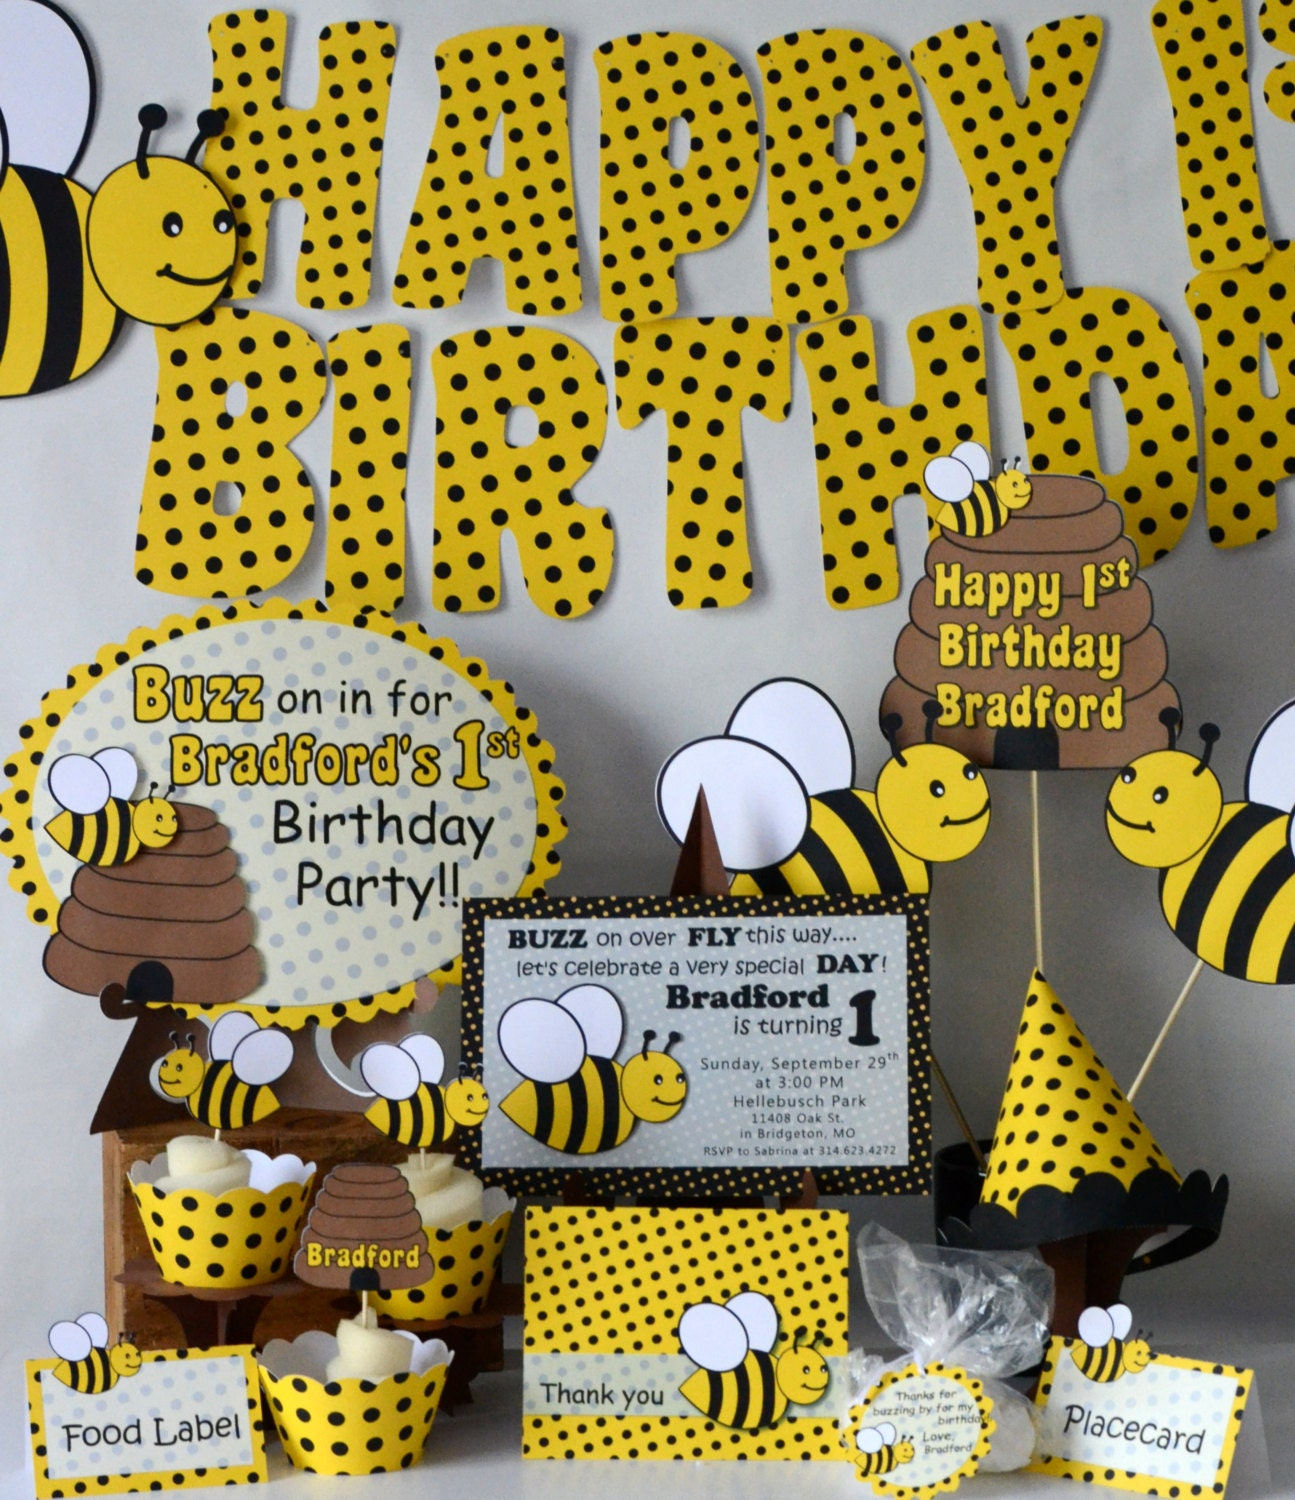 and shower bumble bee wording baby bridal party invitation games sh image cakes cheap decorations boy invitations ideas decor photo lovable